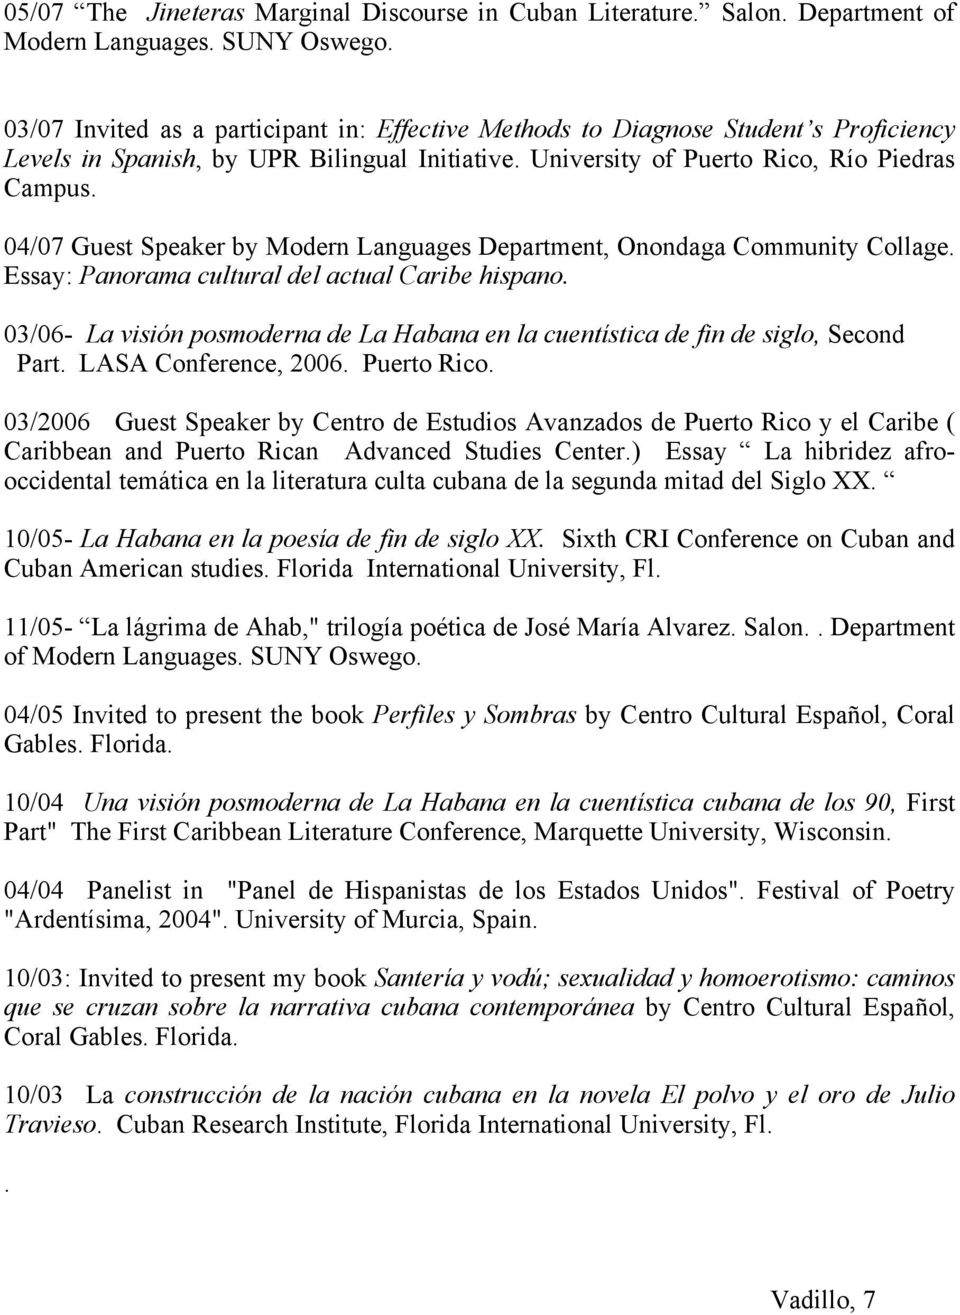 04/07 Guest Speaker by Modern Languages Department, Onondaga Community Collage. Essay: Panorama cultural del actual Caribe hispano.